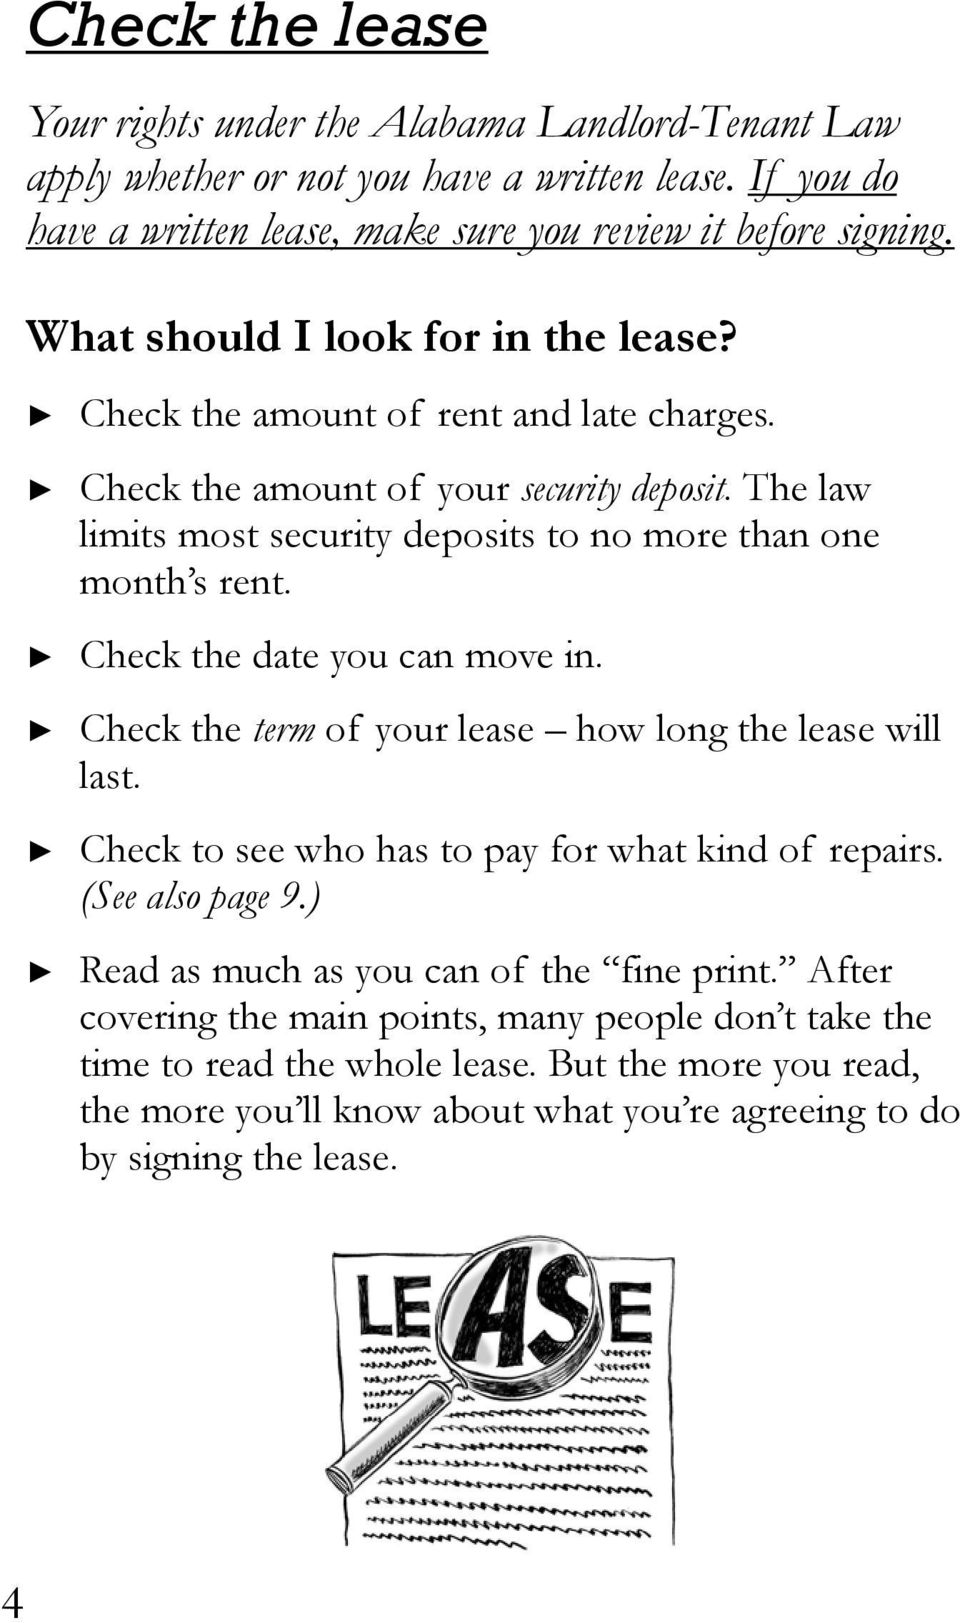 Check the date you can move in. Check the term of your lease how long the lease will last. Check to see who has to pay for what kind of repairs. (See also page 9.